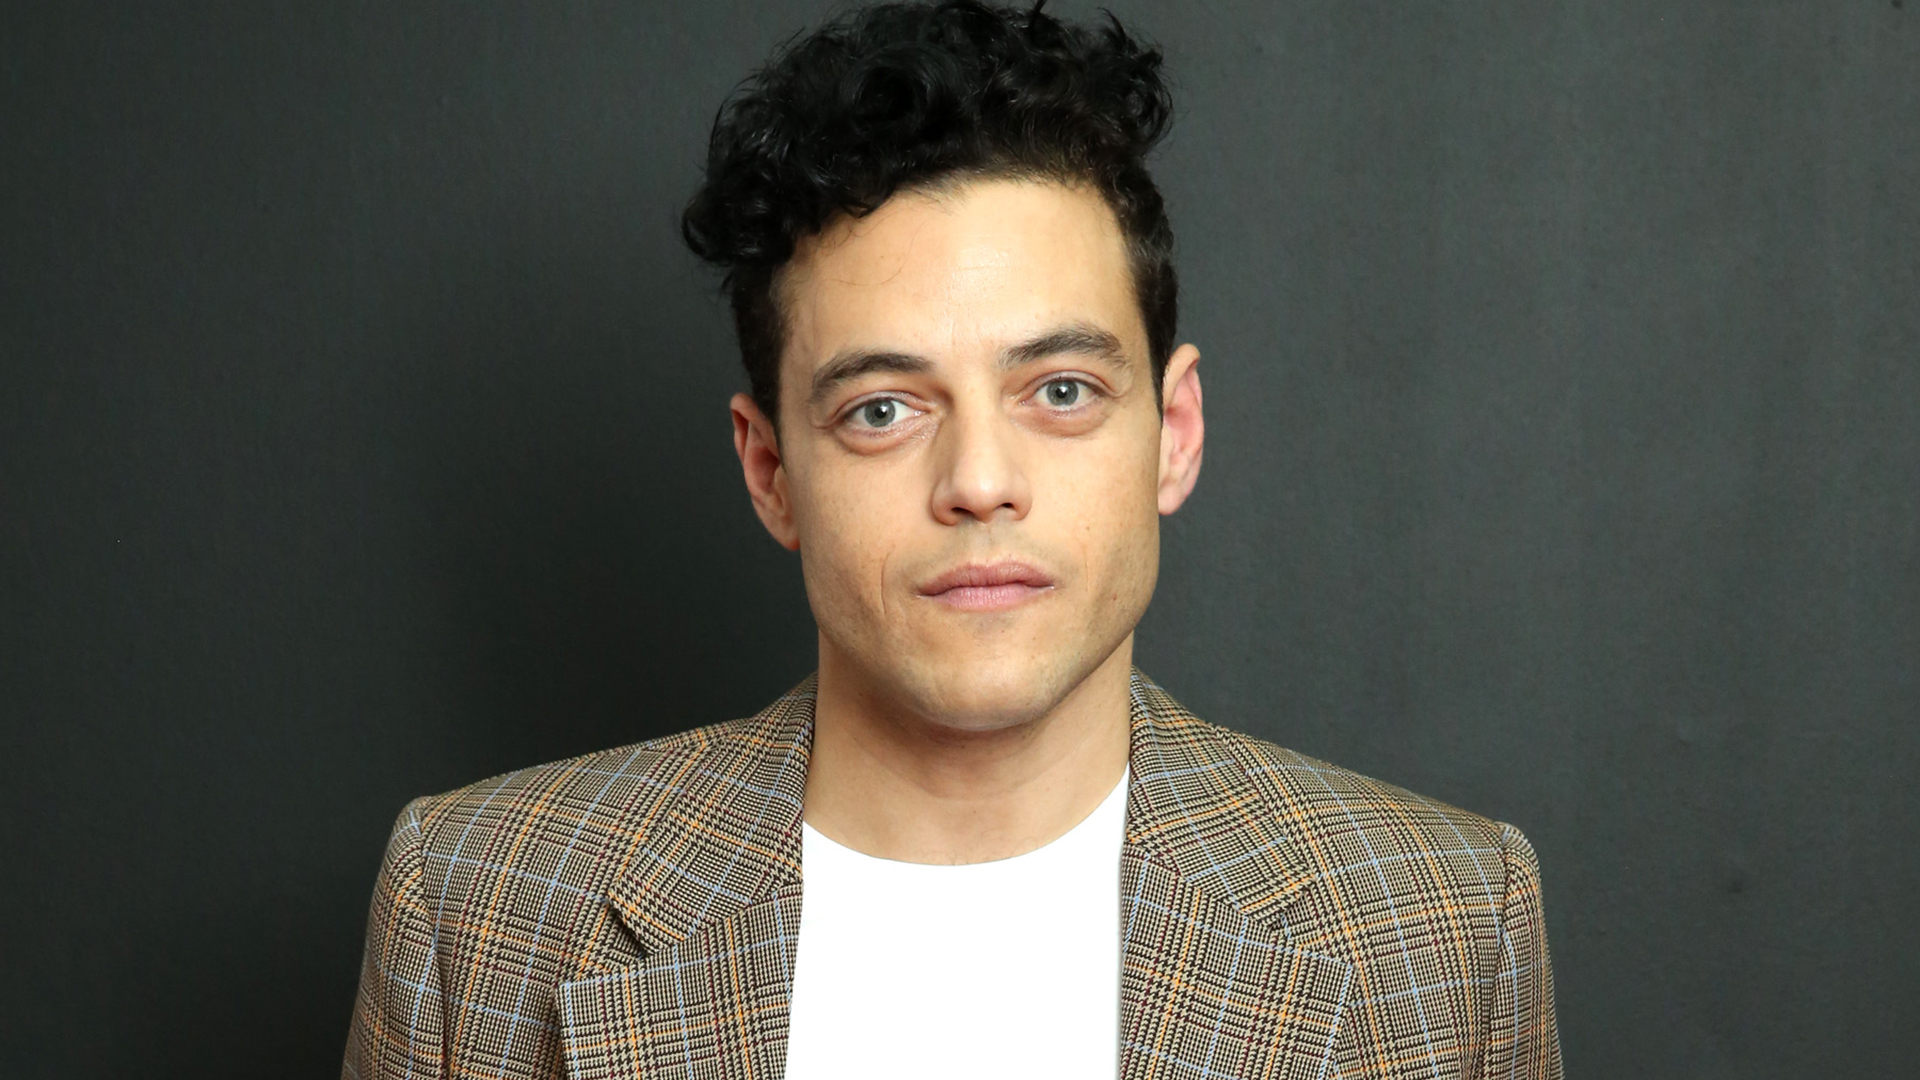 Rami Malek Is the Next James Bond Villain